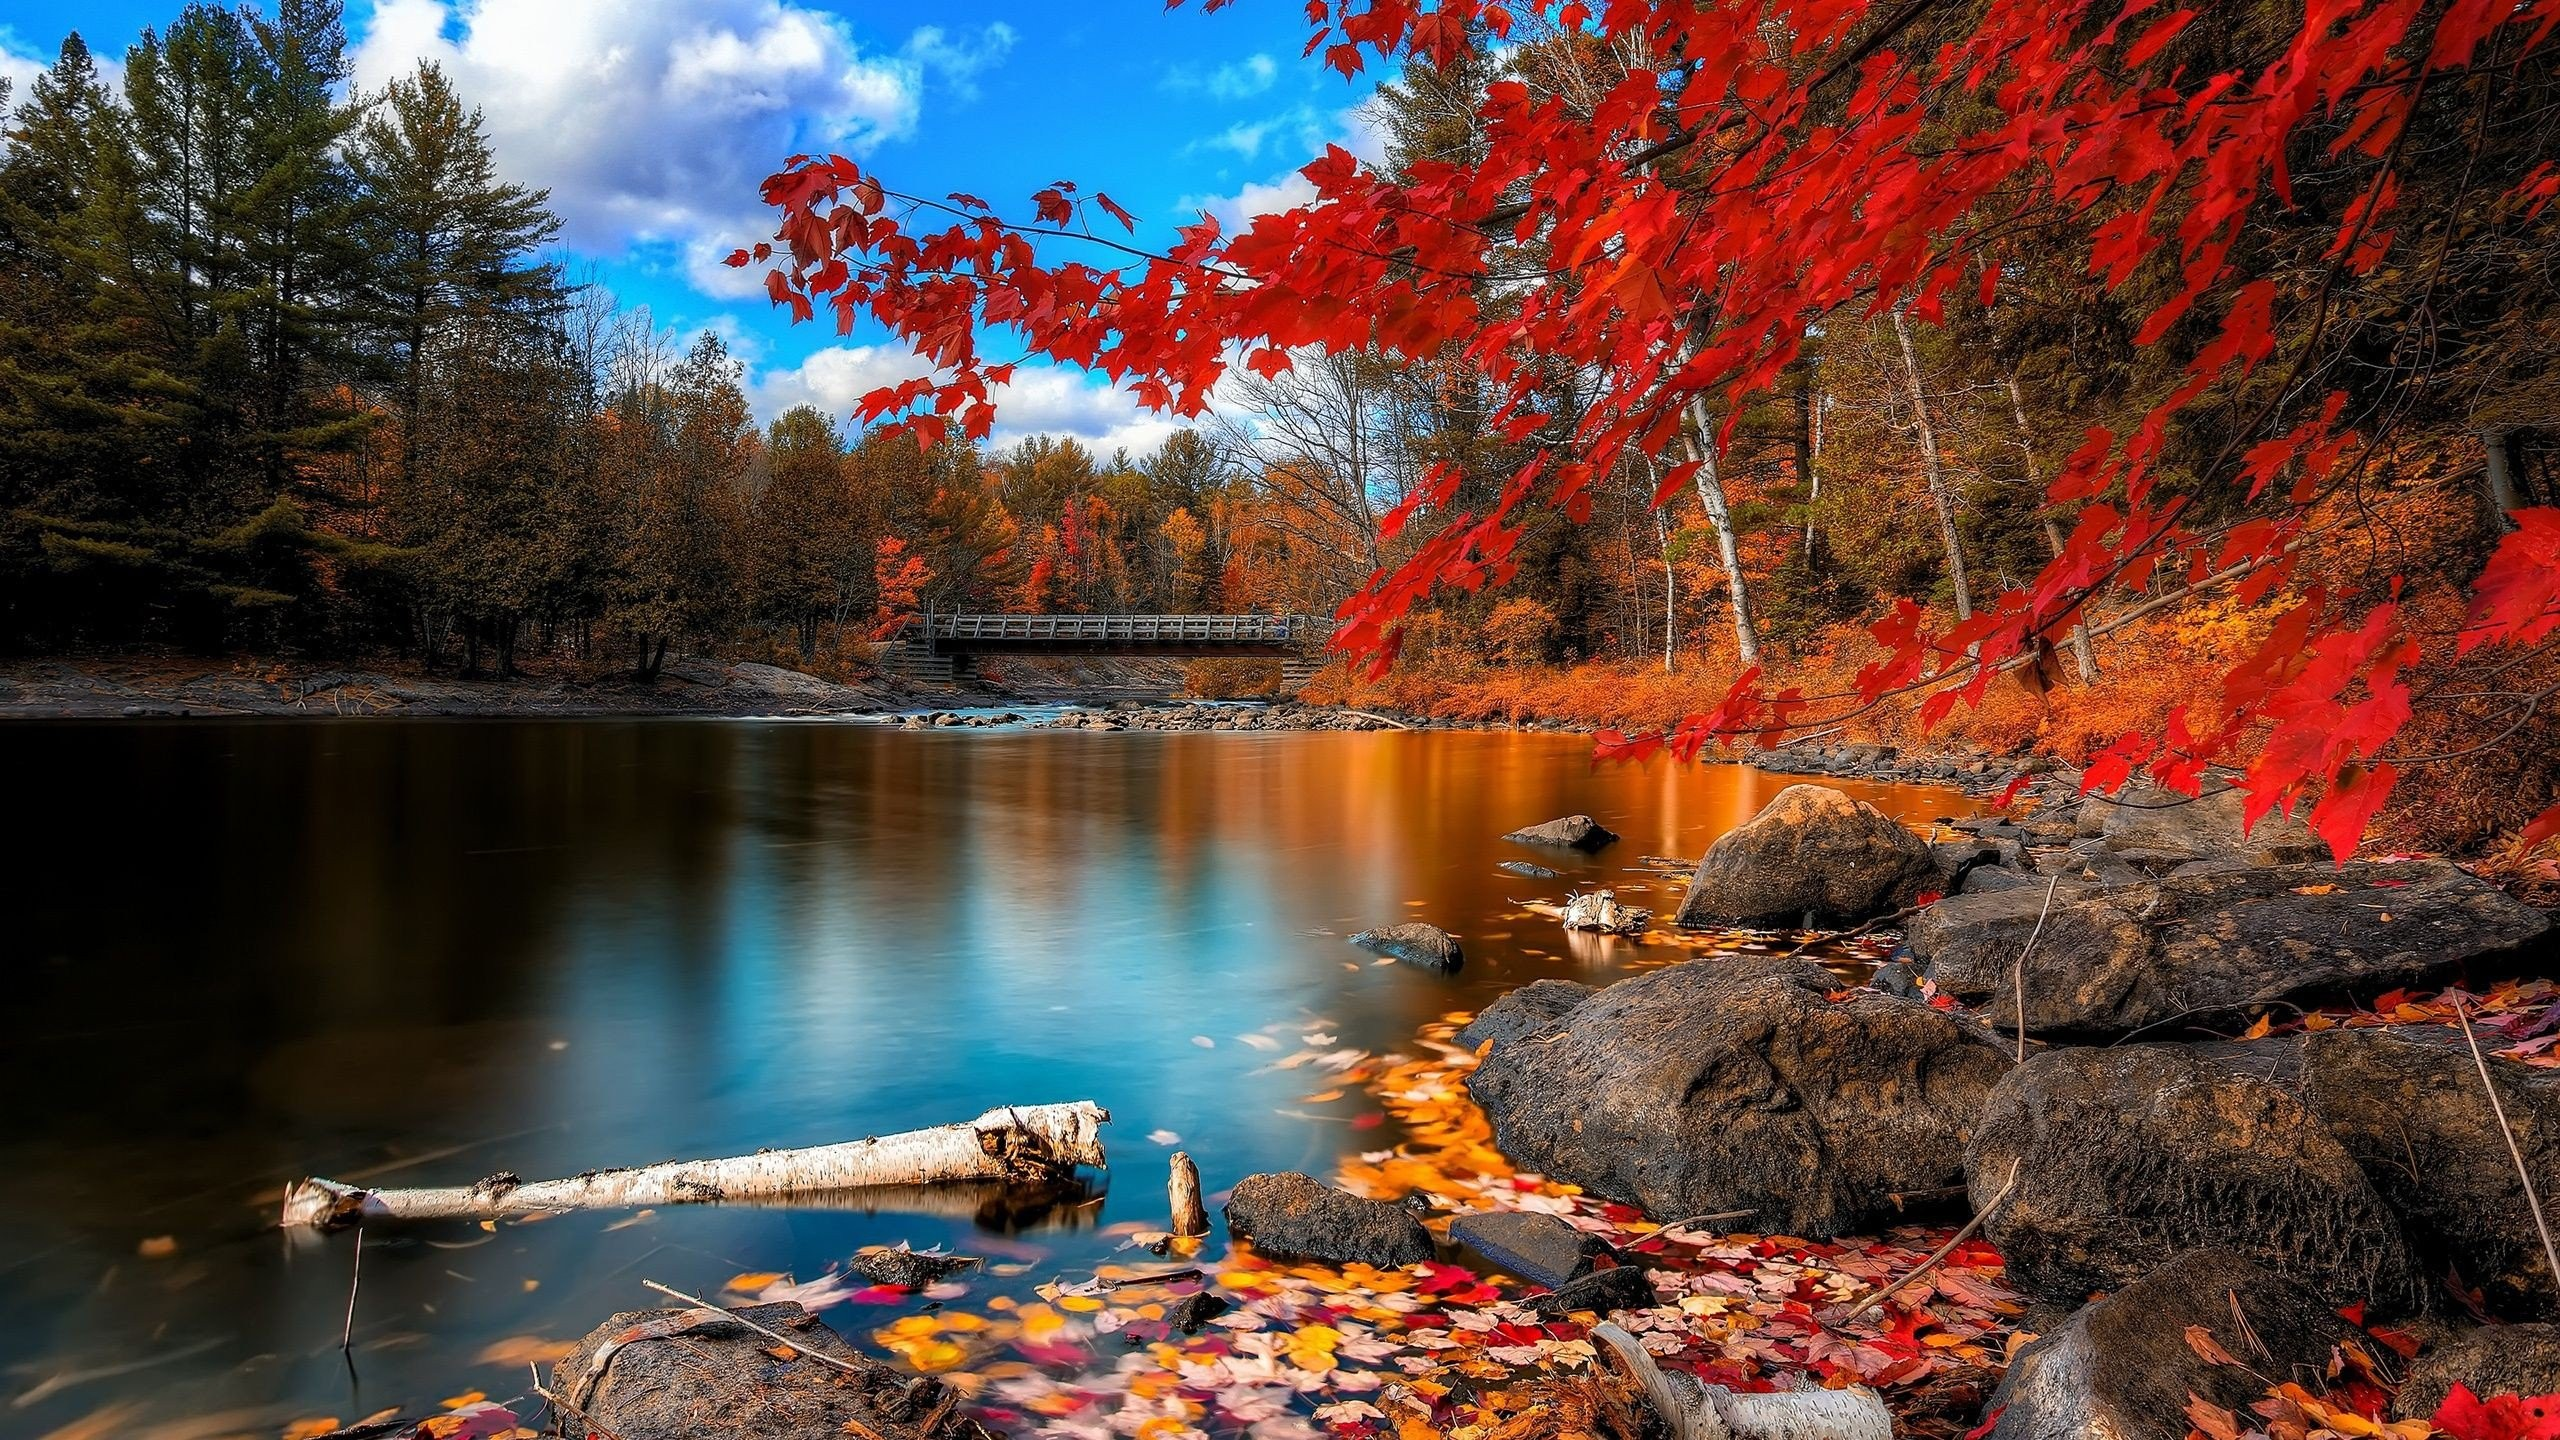 Lakes: Lake Tree Landscape Nature Autumn Forest Woods Hd Wallpaper ...